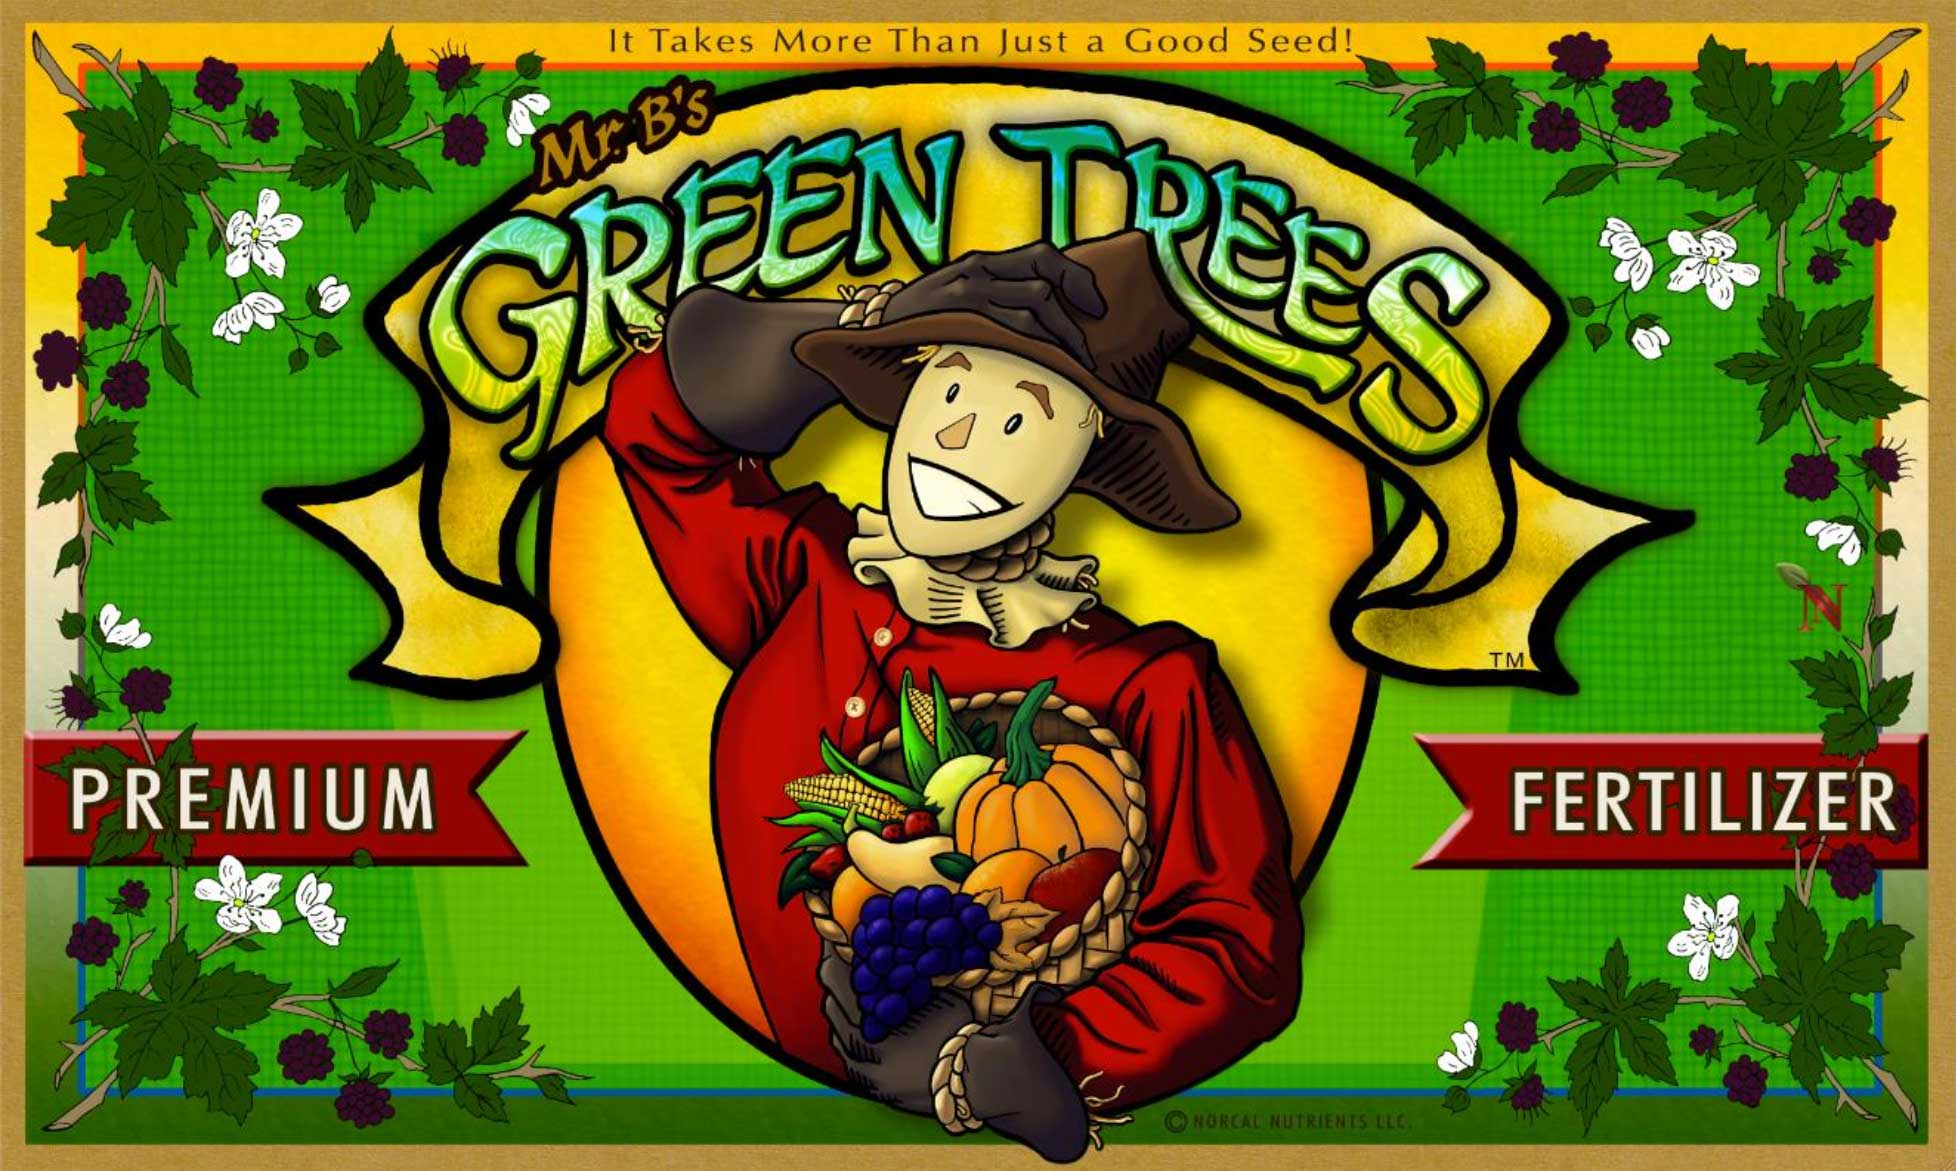 Mr Bs Green Trees - It takes more than just a good seed